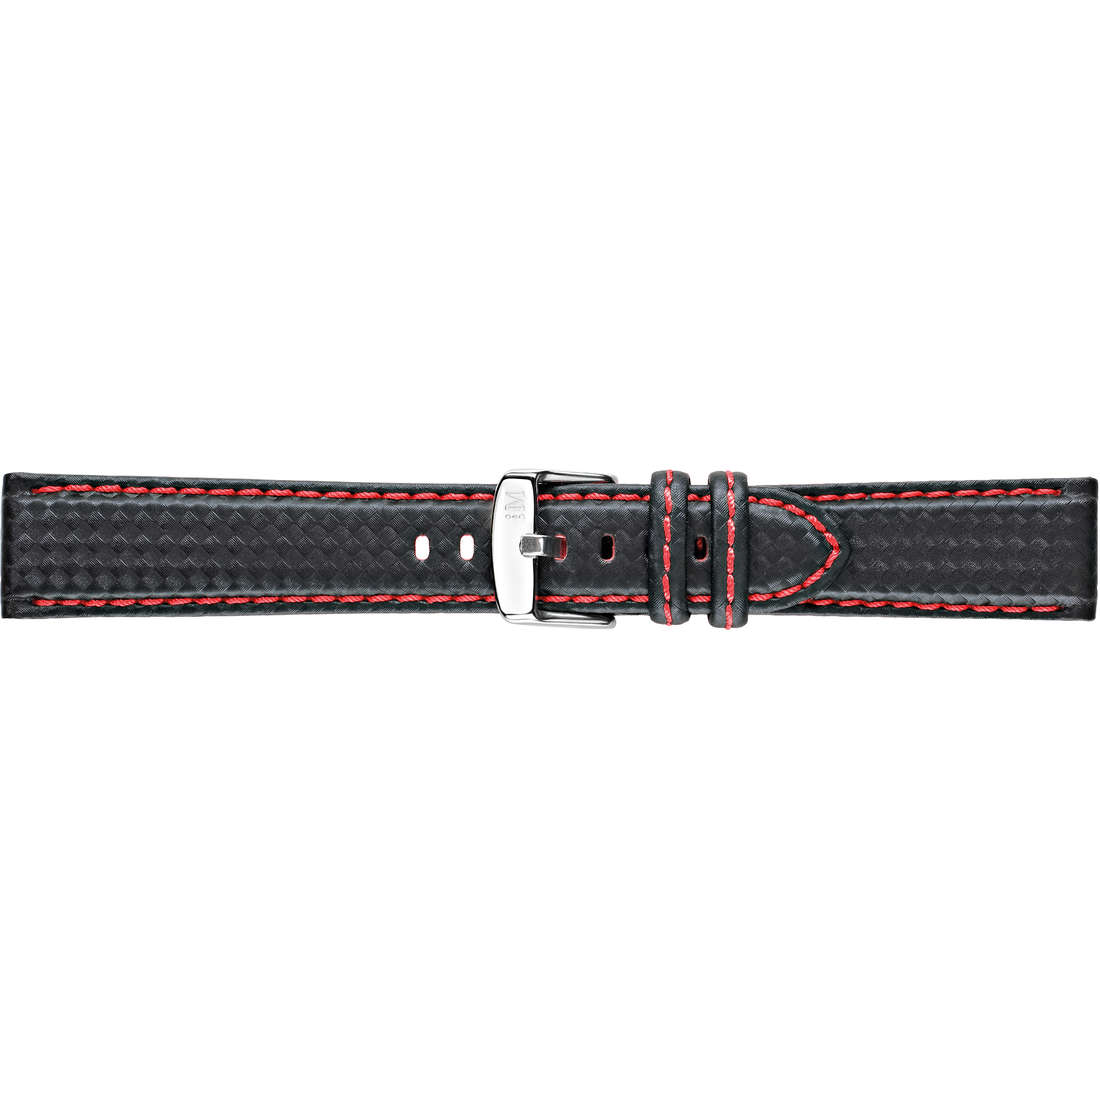 watch watch bands watch straps man Morellato Linea Sport A01U3586977883CR18